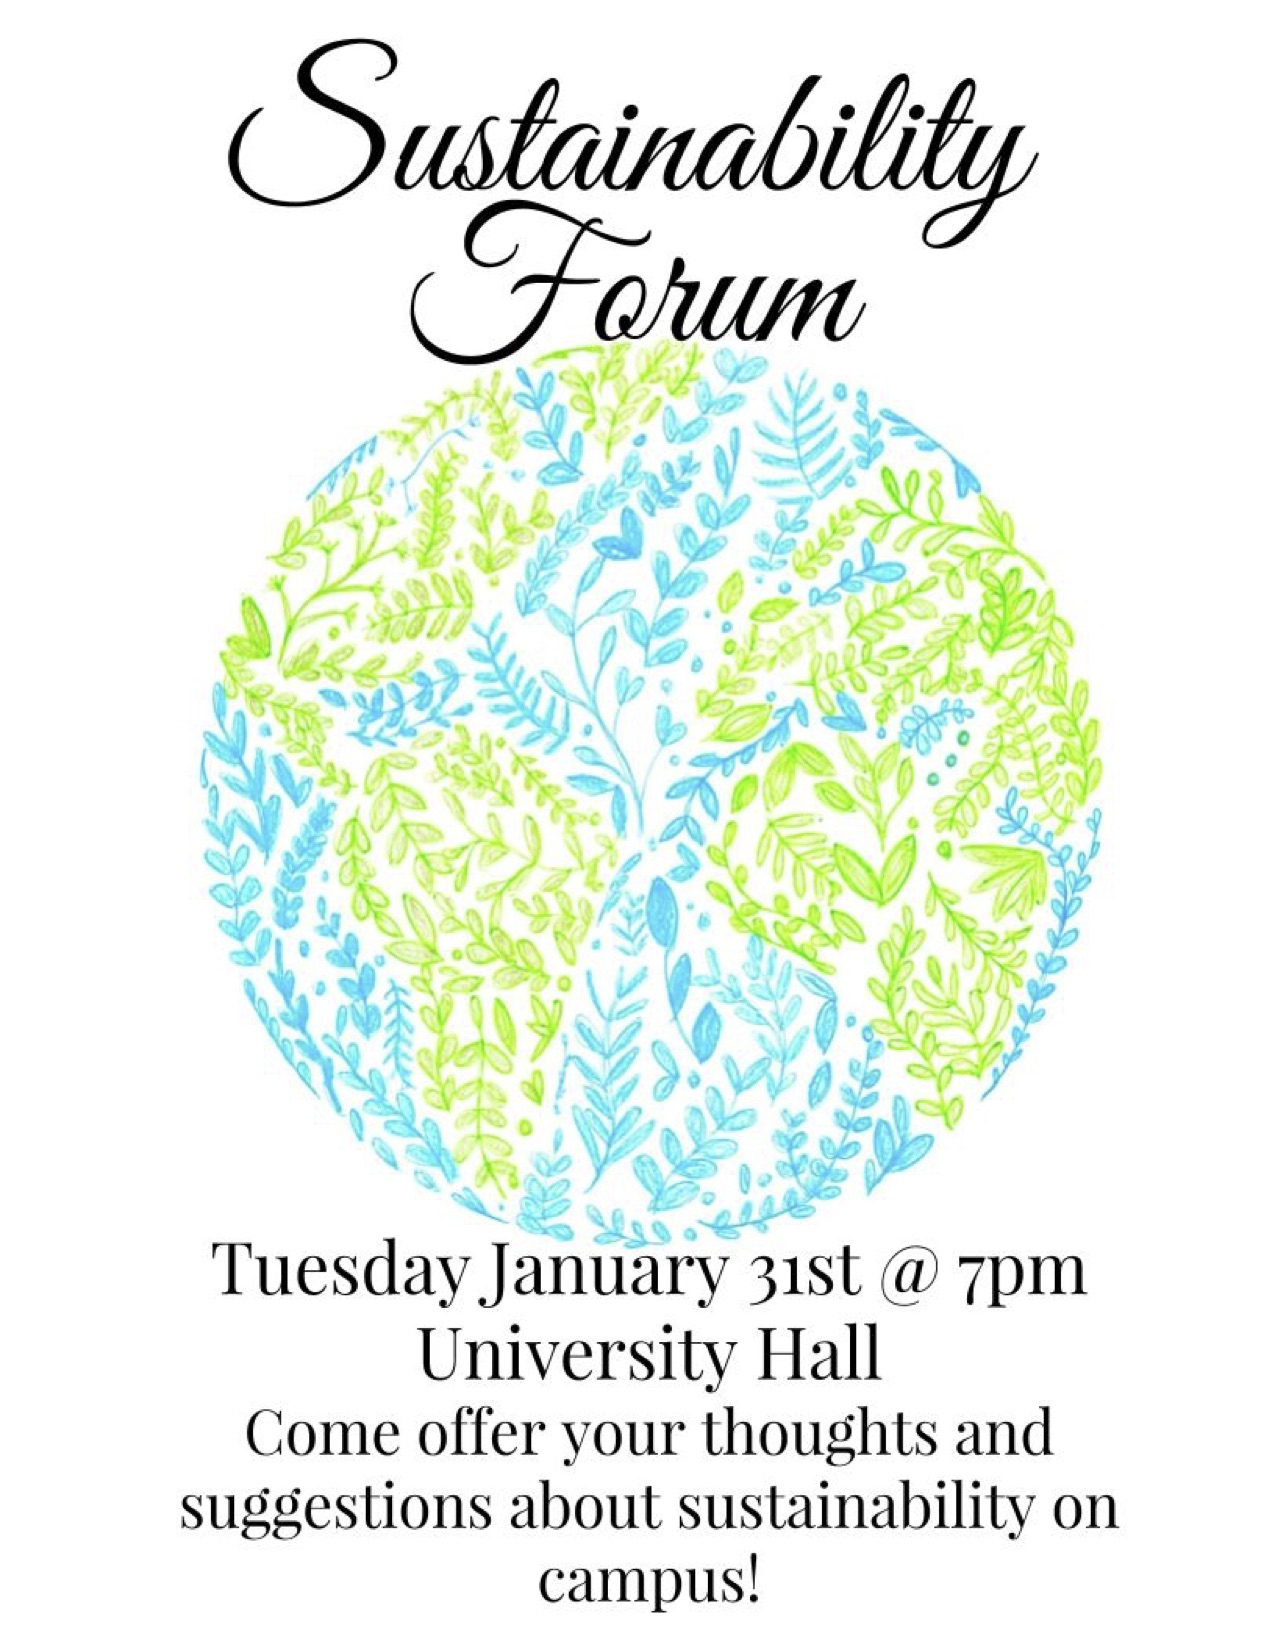 Sustainability Forum to be Held in University Hall